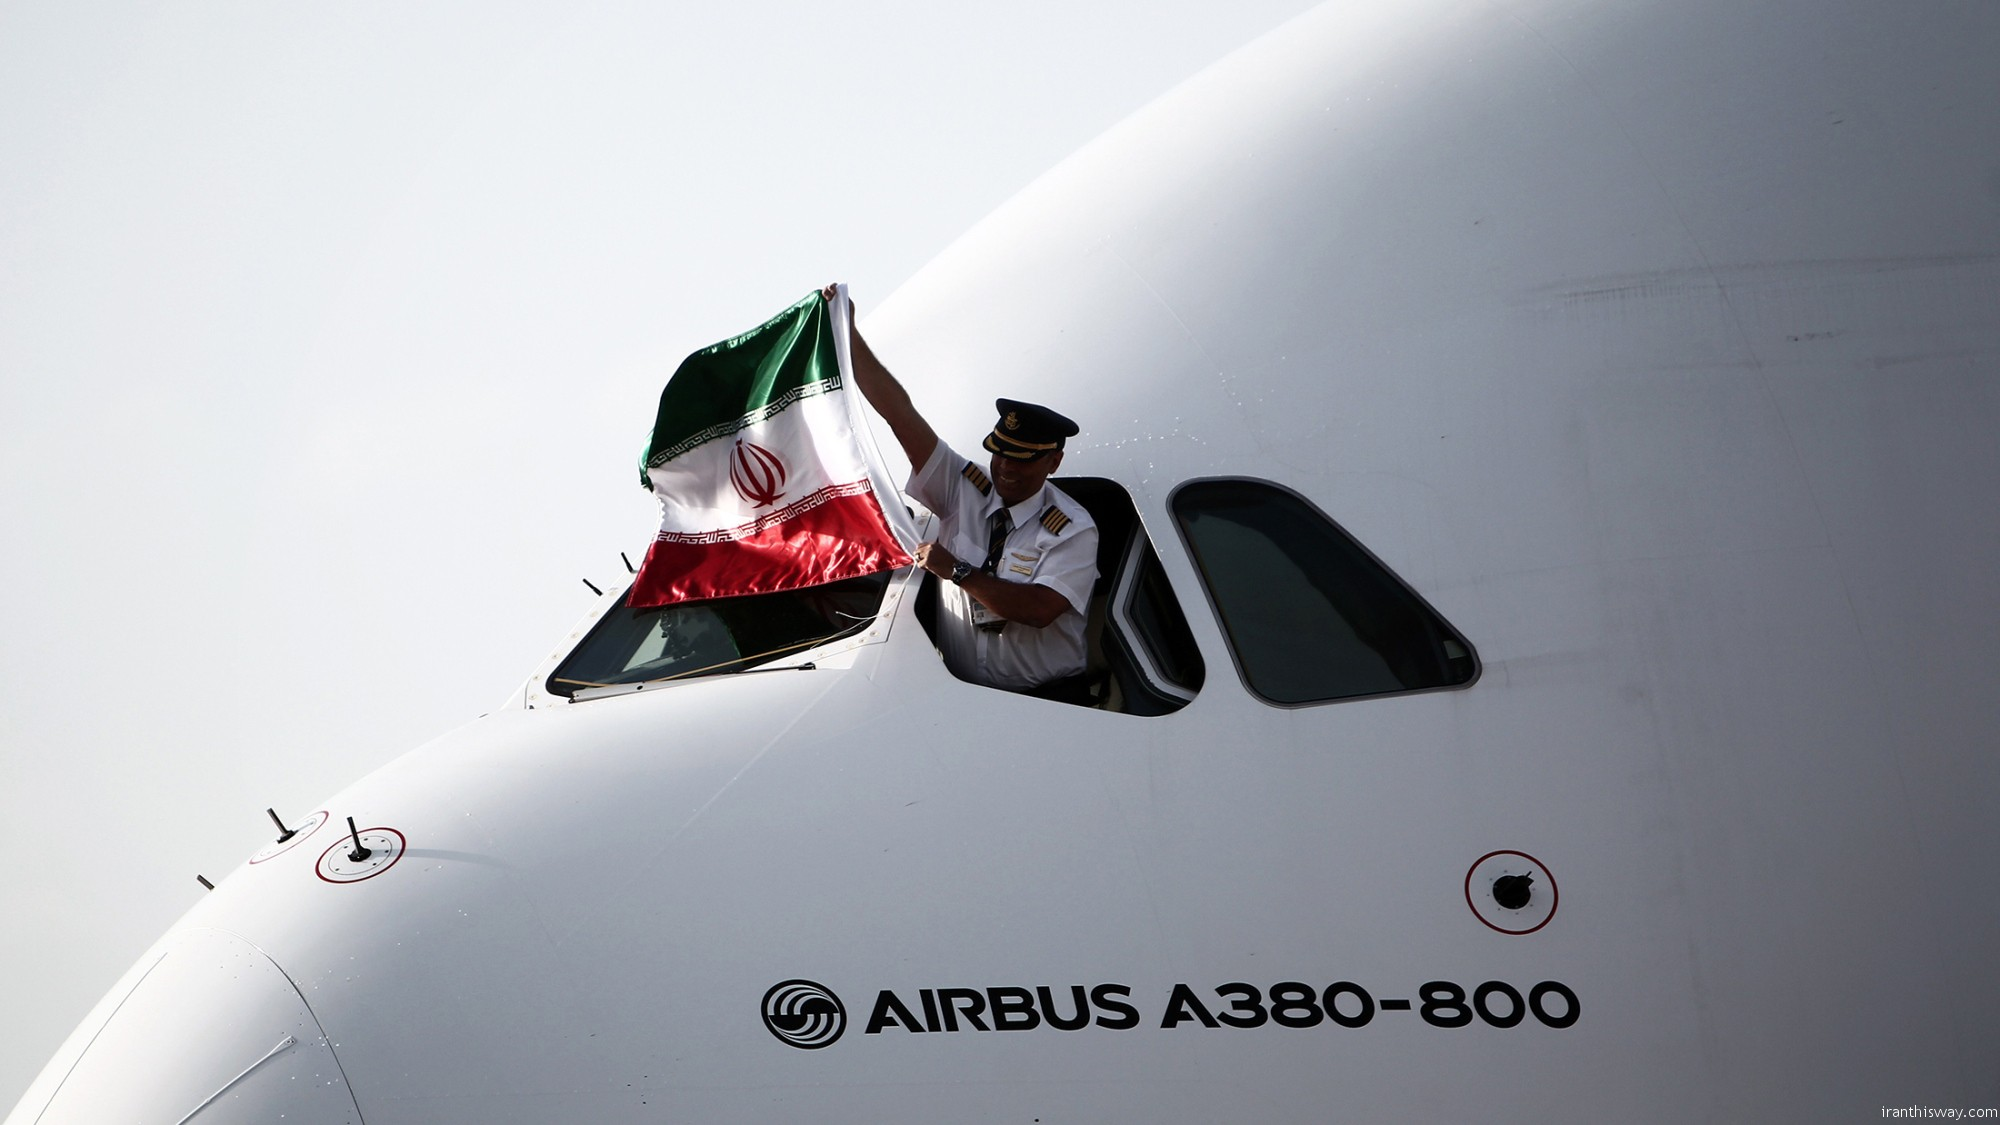 Iran and the European aviation giant Airbus signed a contract on Thursday to sell 100 jets to Iran Air, paving the way for deliveries to start next month, a year after sanctions against the country were lifted.